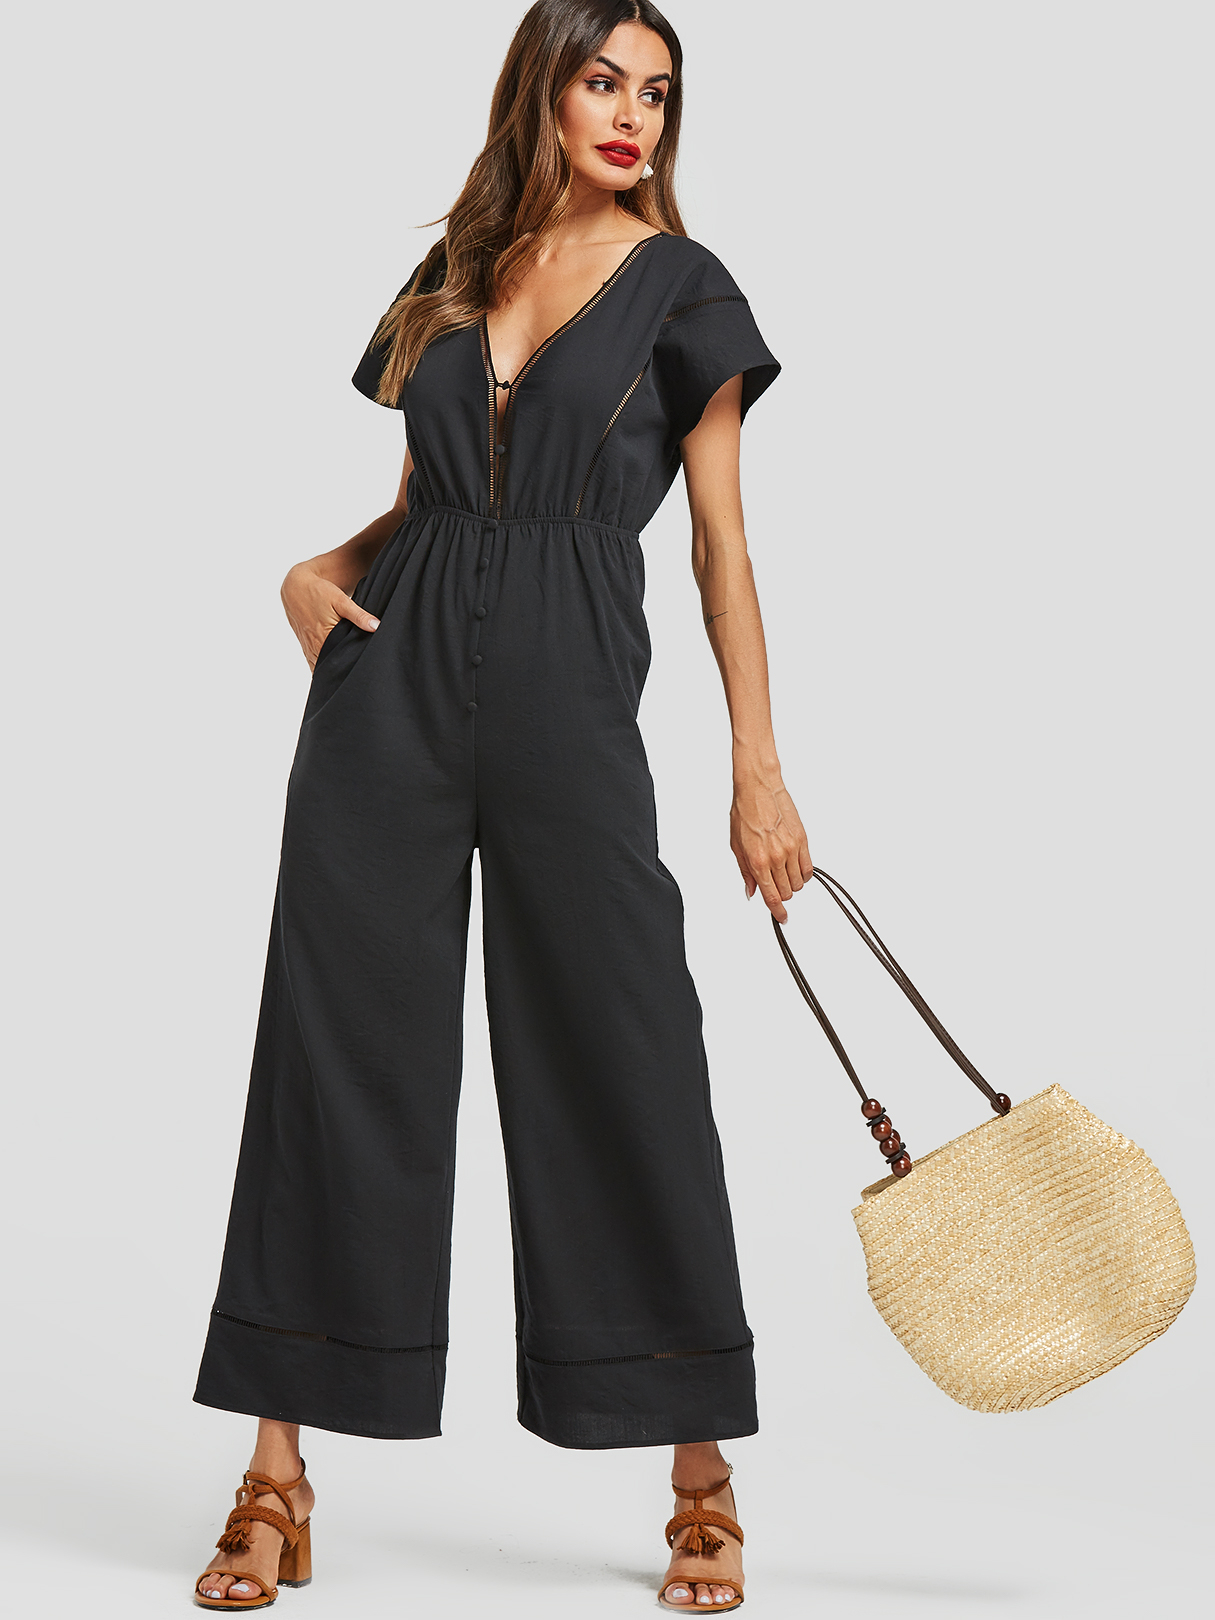 Black Backless Design High-waisted Wide Leg Jumpsuit